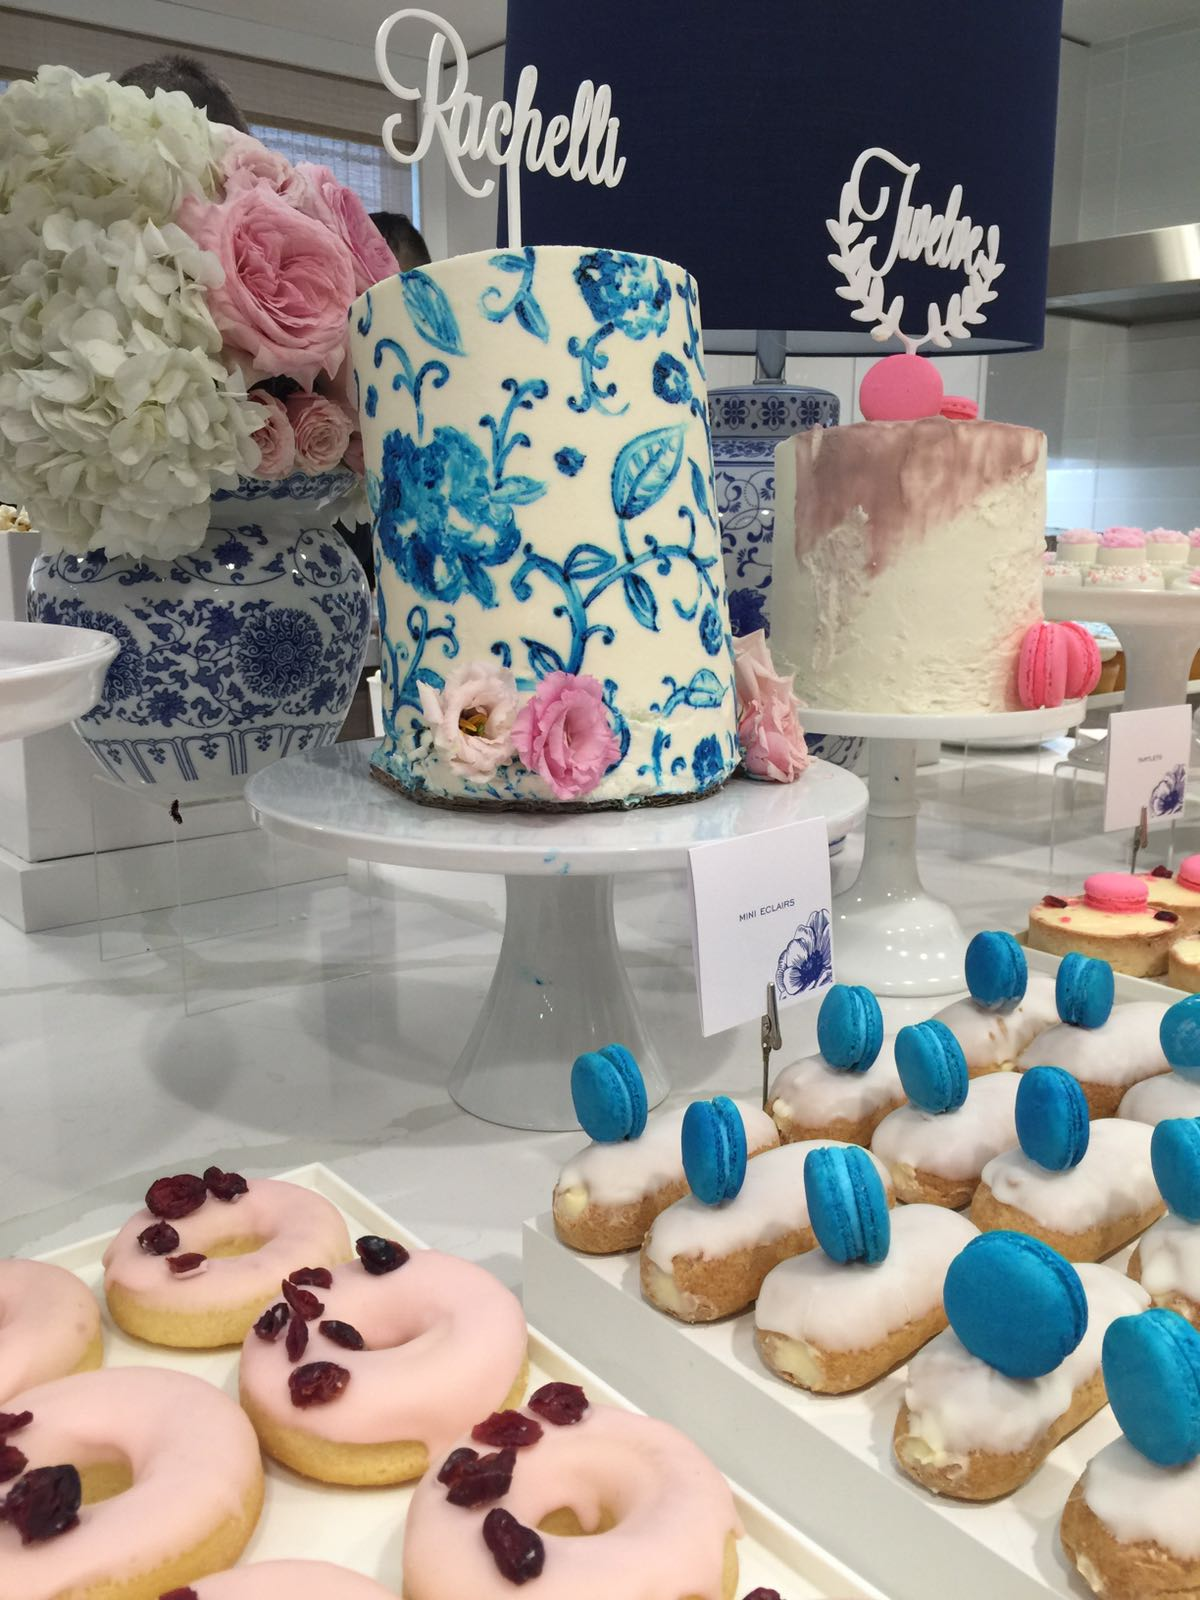 Throwing a Chanukah party? You might love some of the details at this Bas Mitzvah. Note that these photos are intended as inspiration only...in every party, there's always one aspect you'll want to make your own.